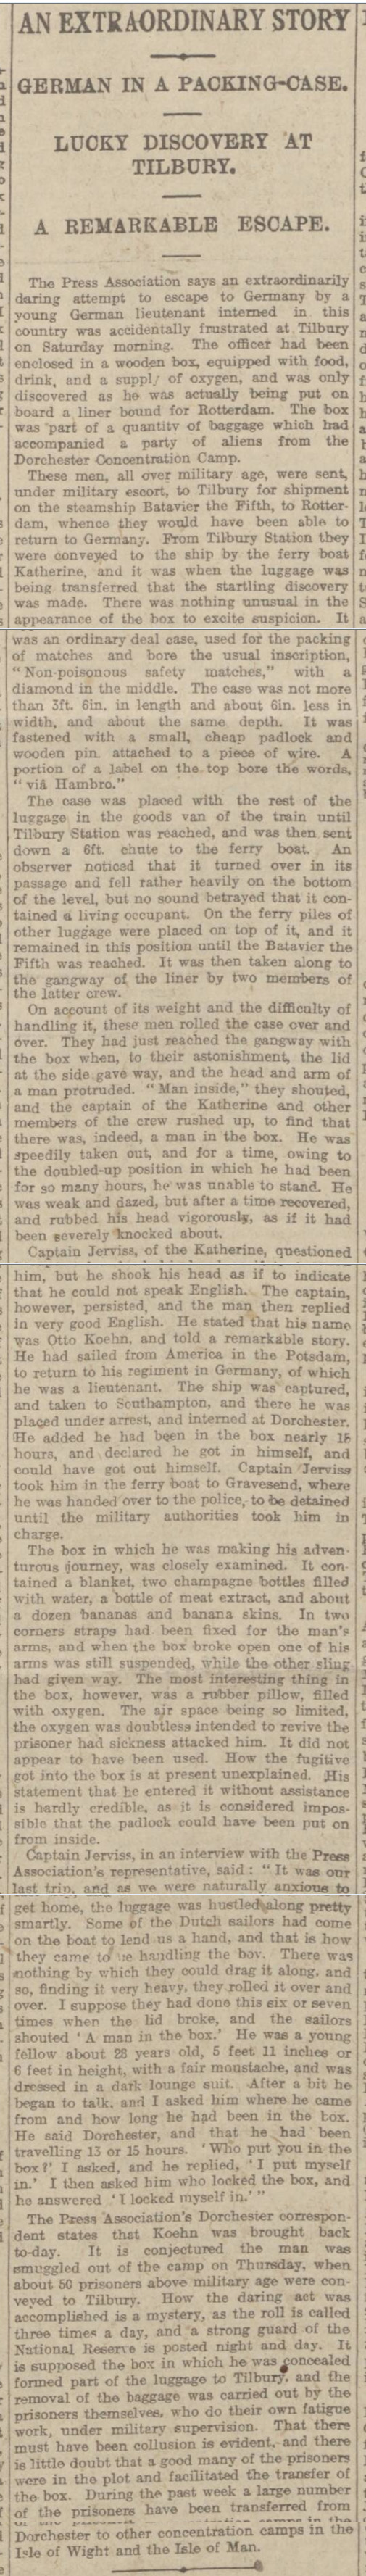 historical newspaper report on German POW in World War One Attempts to Escape in a Packing Case